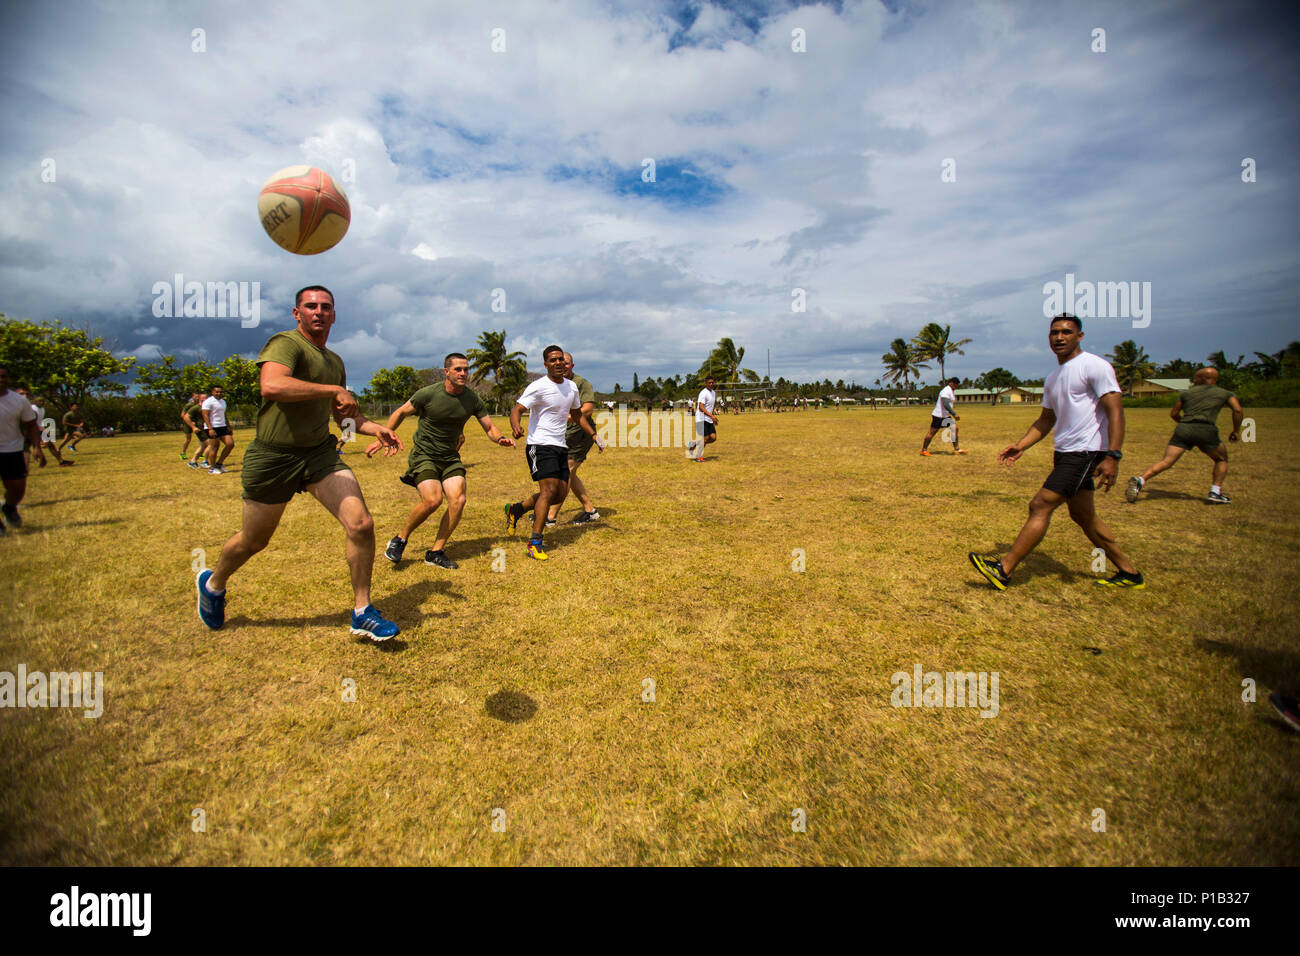 TALIAI, Tonga – U.S. Marine Lance Cpl. Nicholas Maclaren, left, a combat engineer with Combat Engineer Platoon, Task Force Koa Moana 16-4, passes a ball during a rugby game in Taliai, Tonga, Oct. 8, 2016. During Exercise Koa Moana, U.S. service members and His Majesty's Armed Forces worked together to enhance and improve military-to-military relations. (U.S. Marine Corps Photo by Cpl. James Treviño) - Stock Image